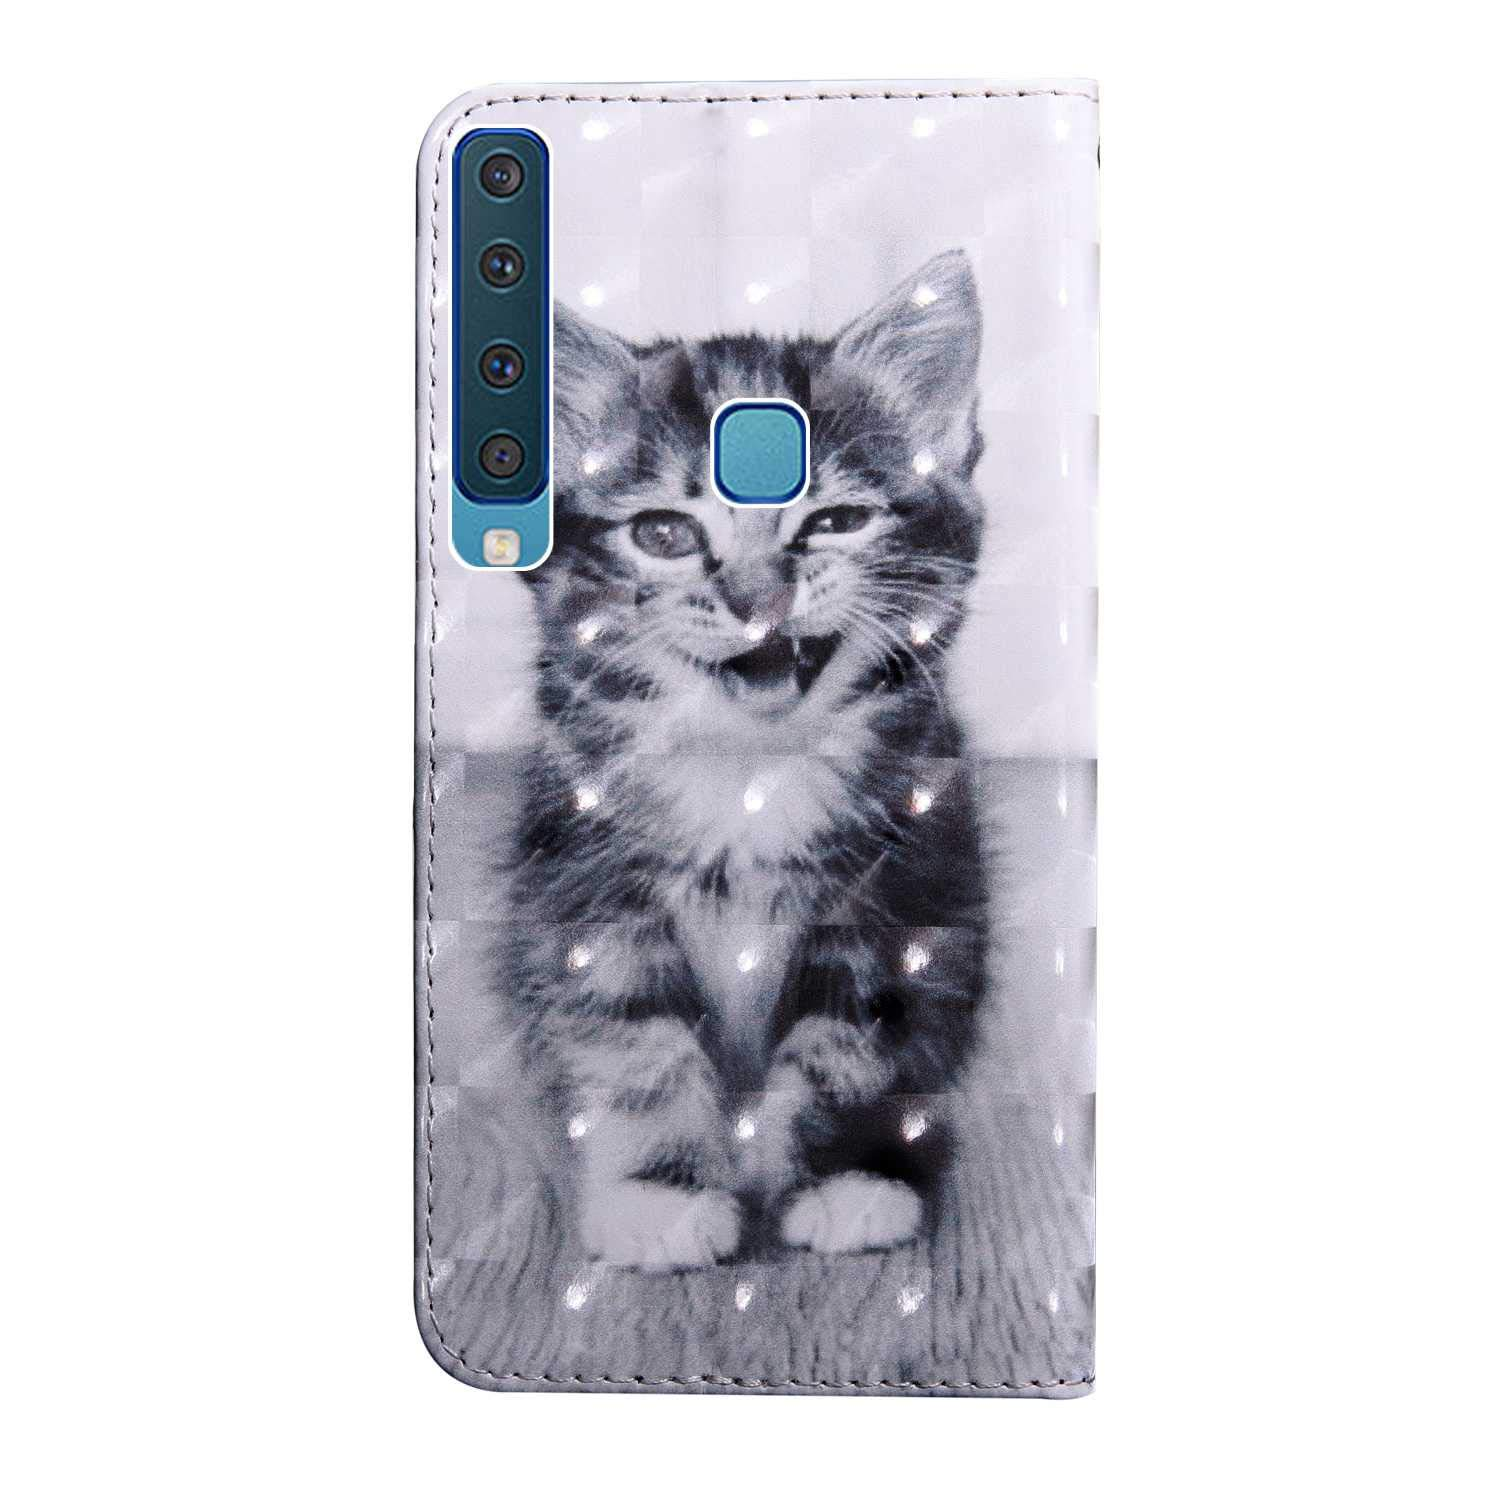 #3 Lace PU Leather Book Style Cover with Card Slots Bear Village Galaxy A9 2018 Case 3D Pattern Design Wallet Flip Case for Samsung Galaxy A9 2018